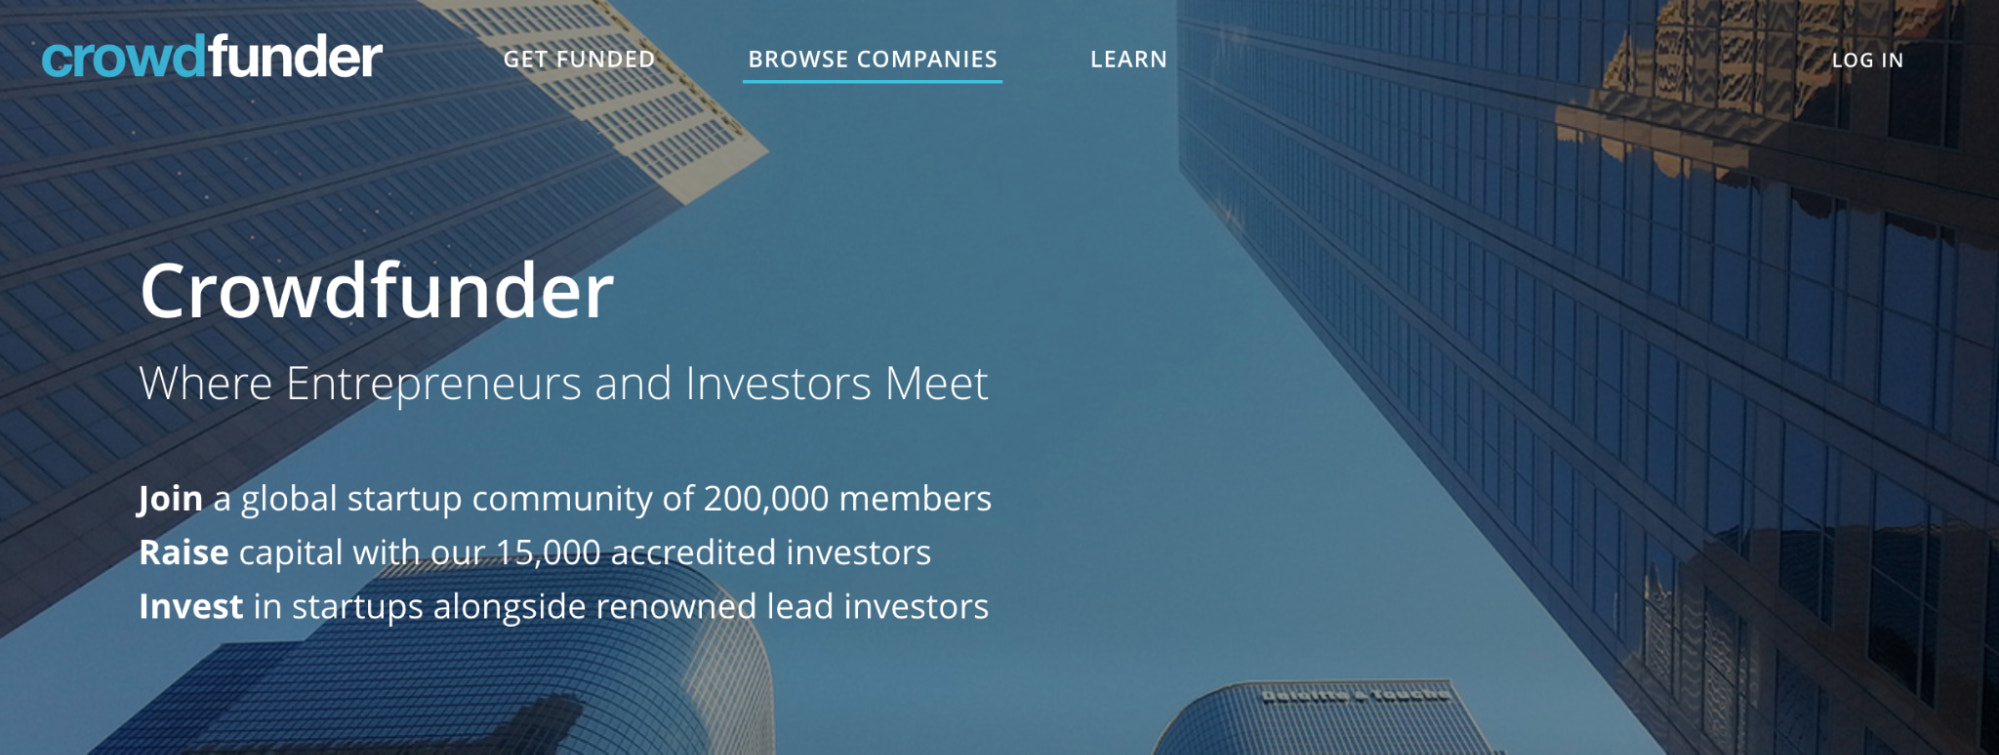 crowdfunder crowdfunding site for seed-stage companies